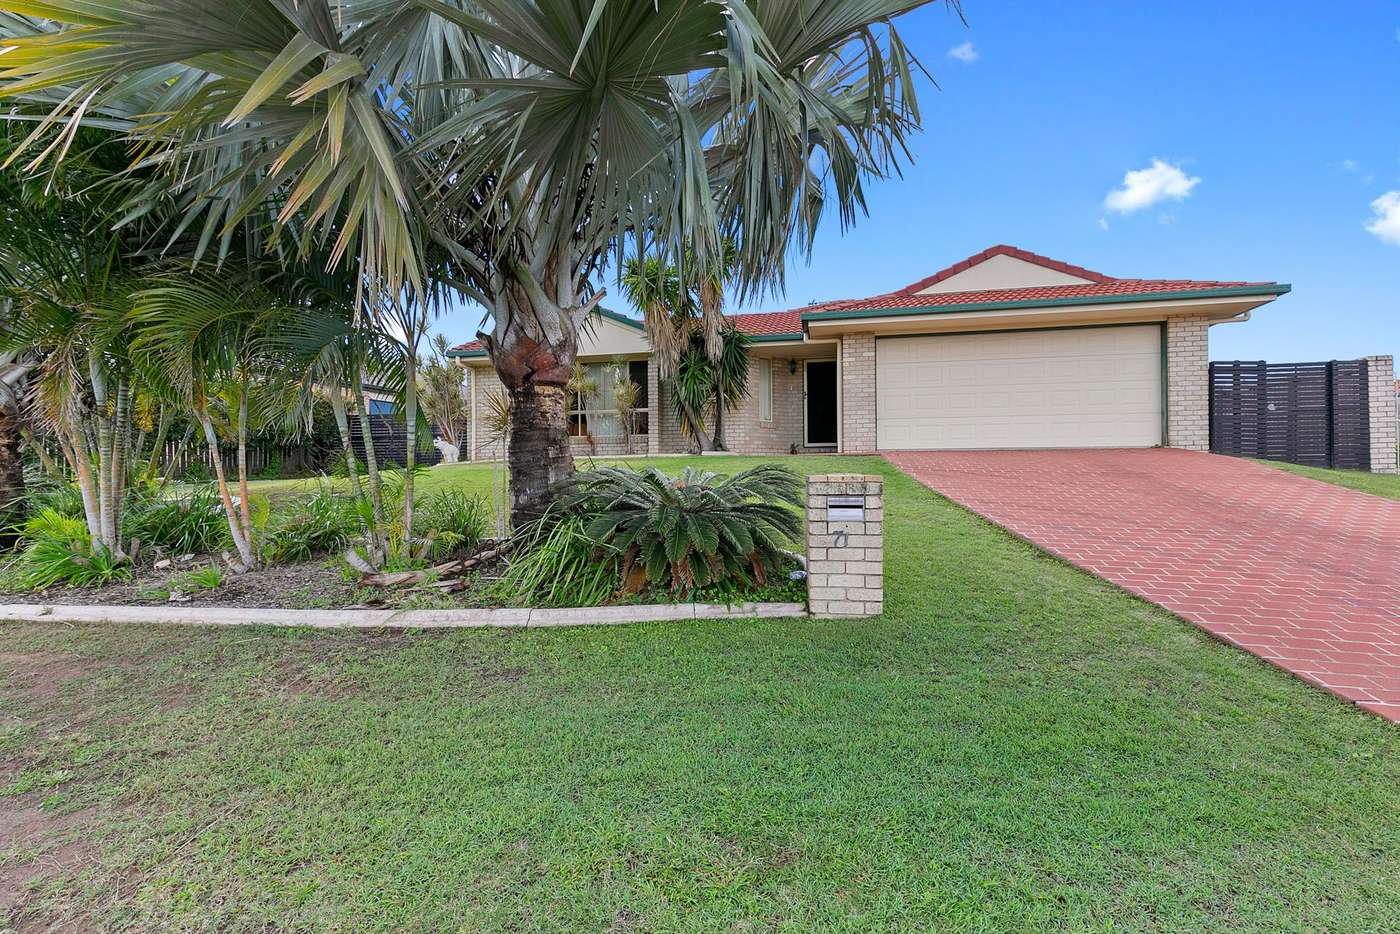 Main view of Homely house listing, 71 St Joseph Drive, Urraween QLD 4655